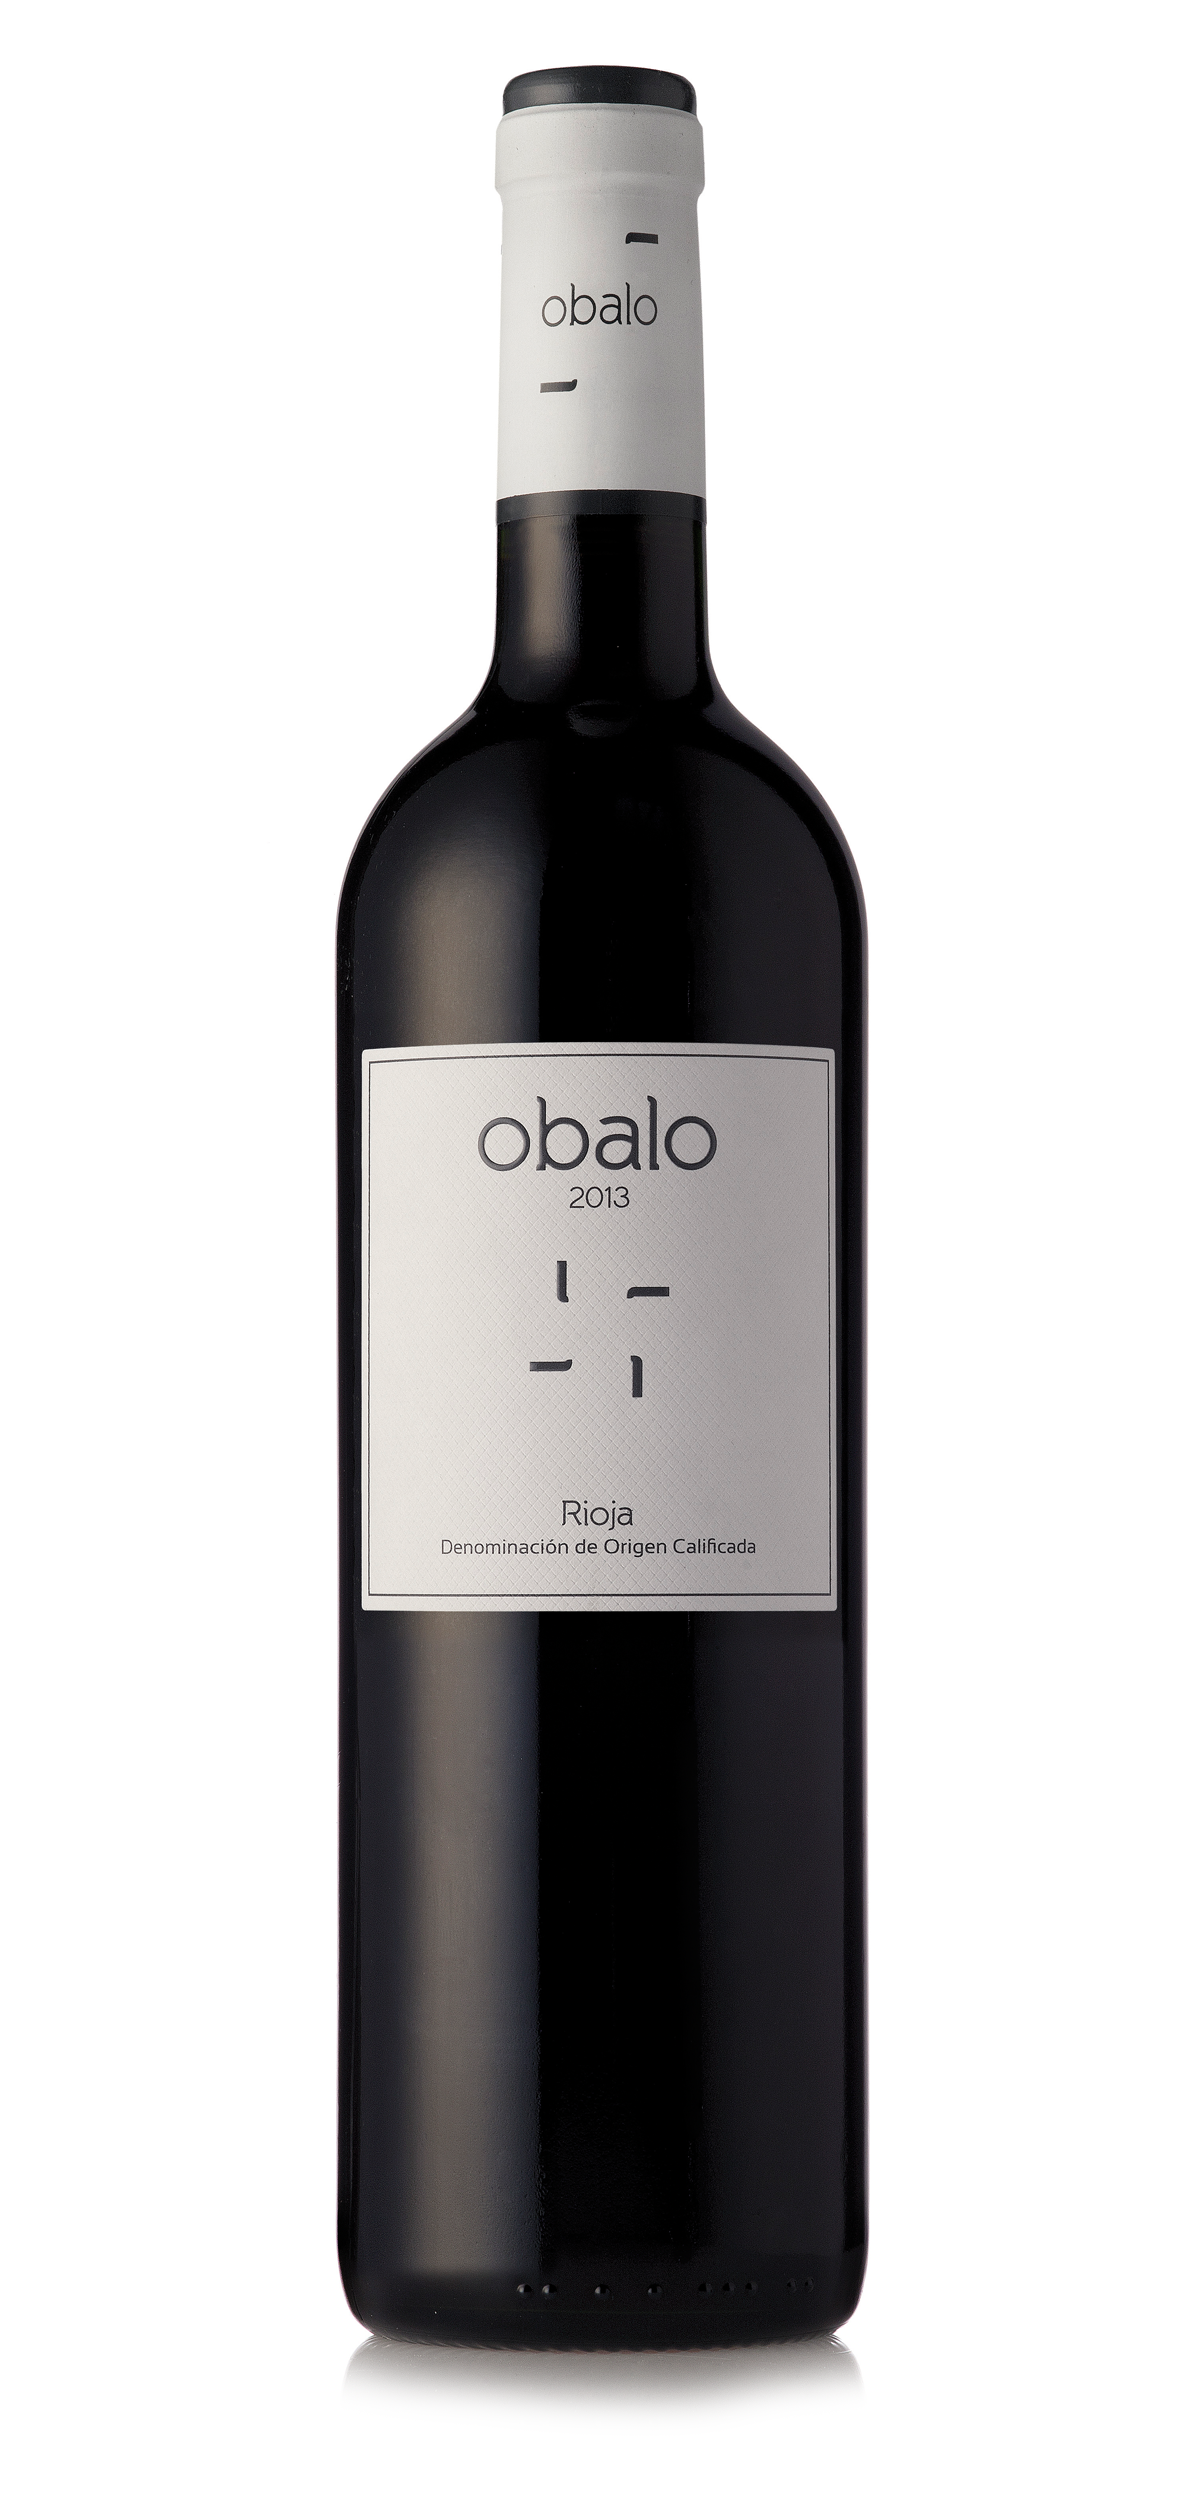 Obalo wine bottle design